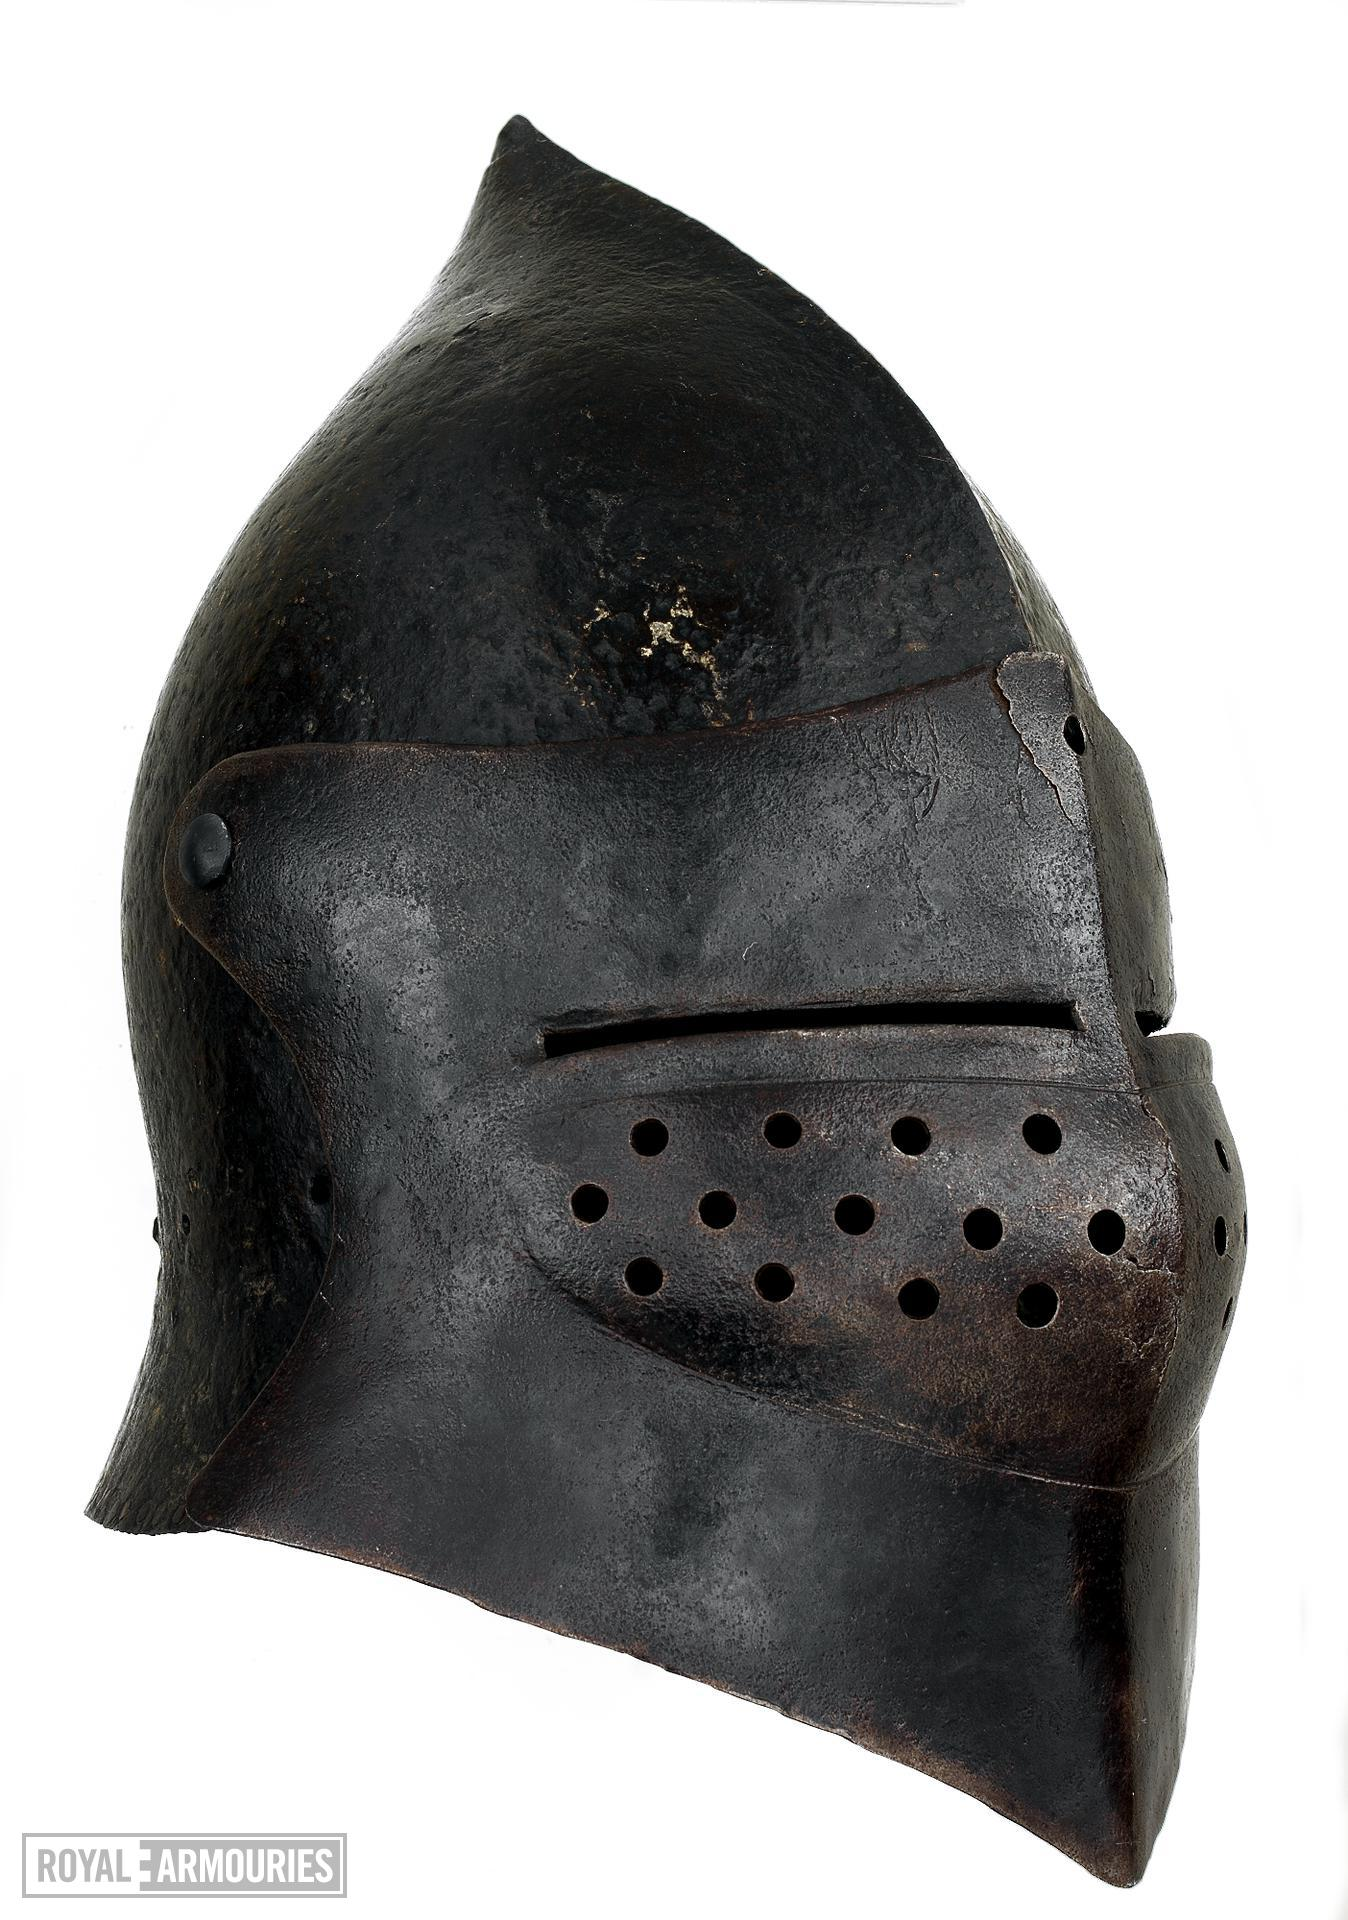 Sallet Modified into a bascinet